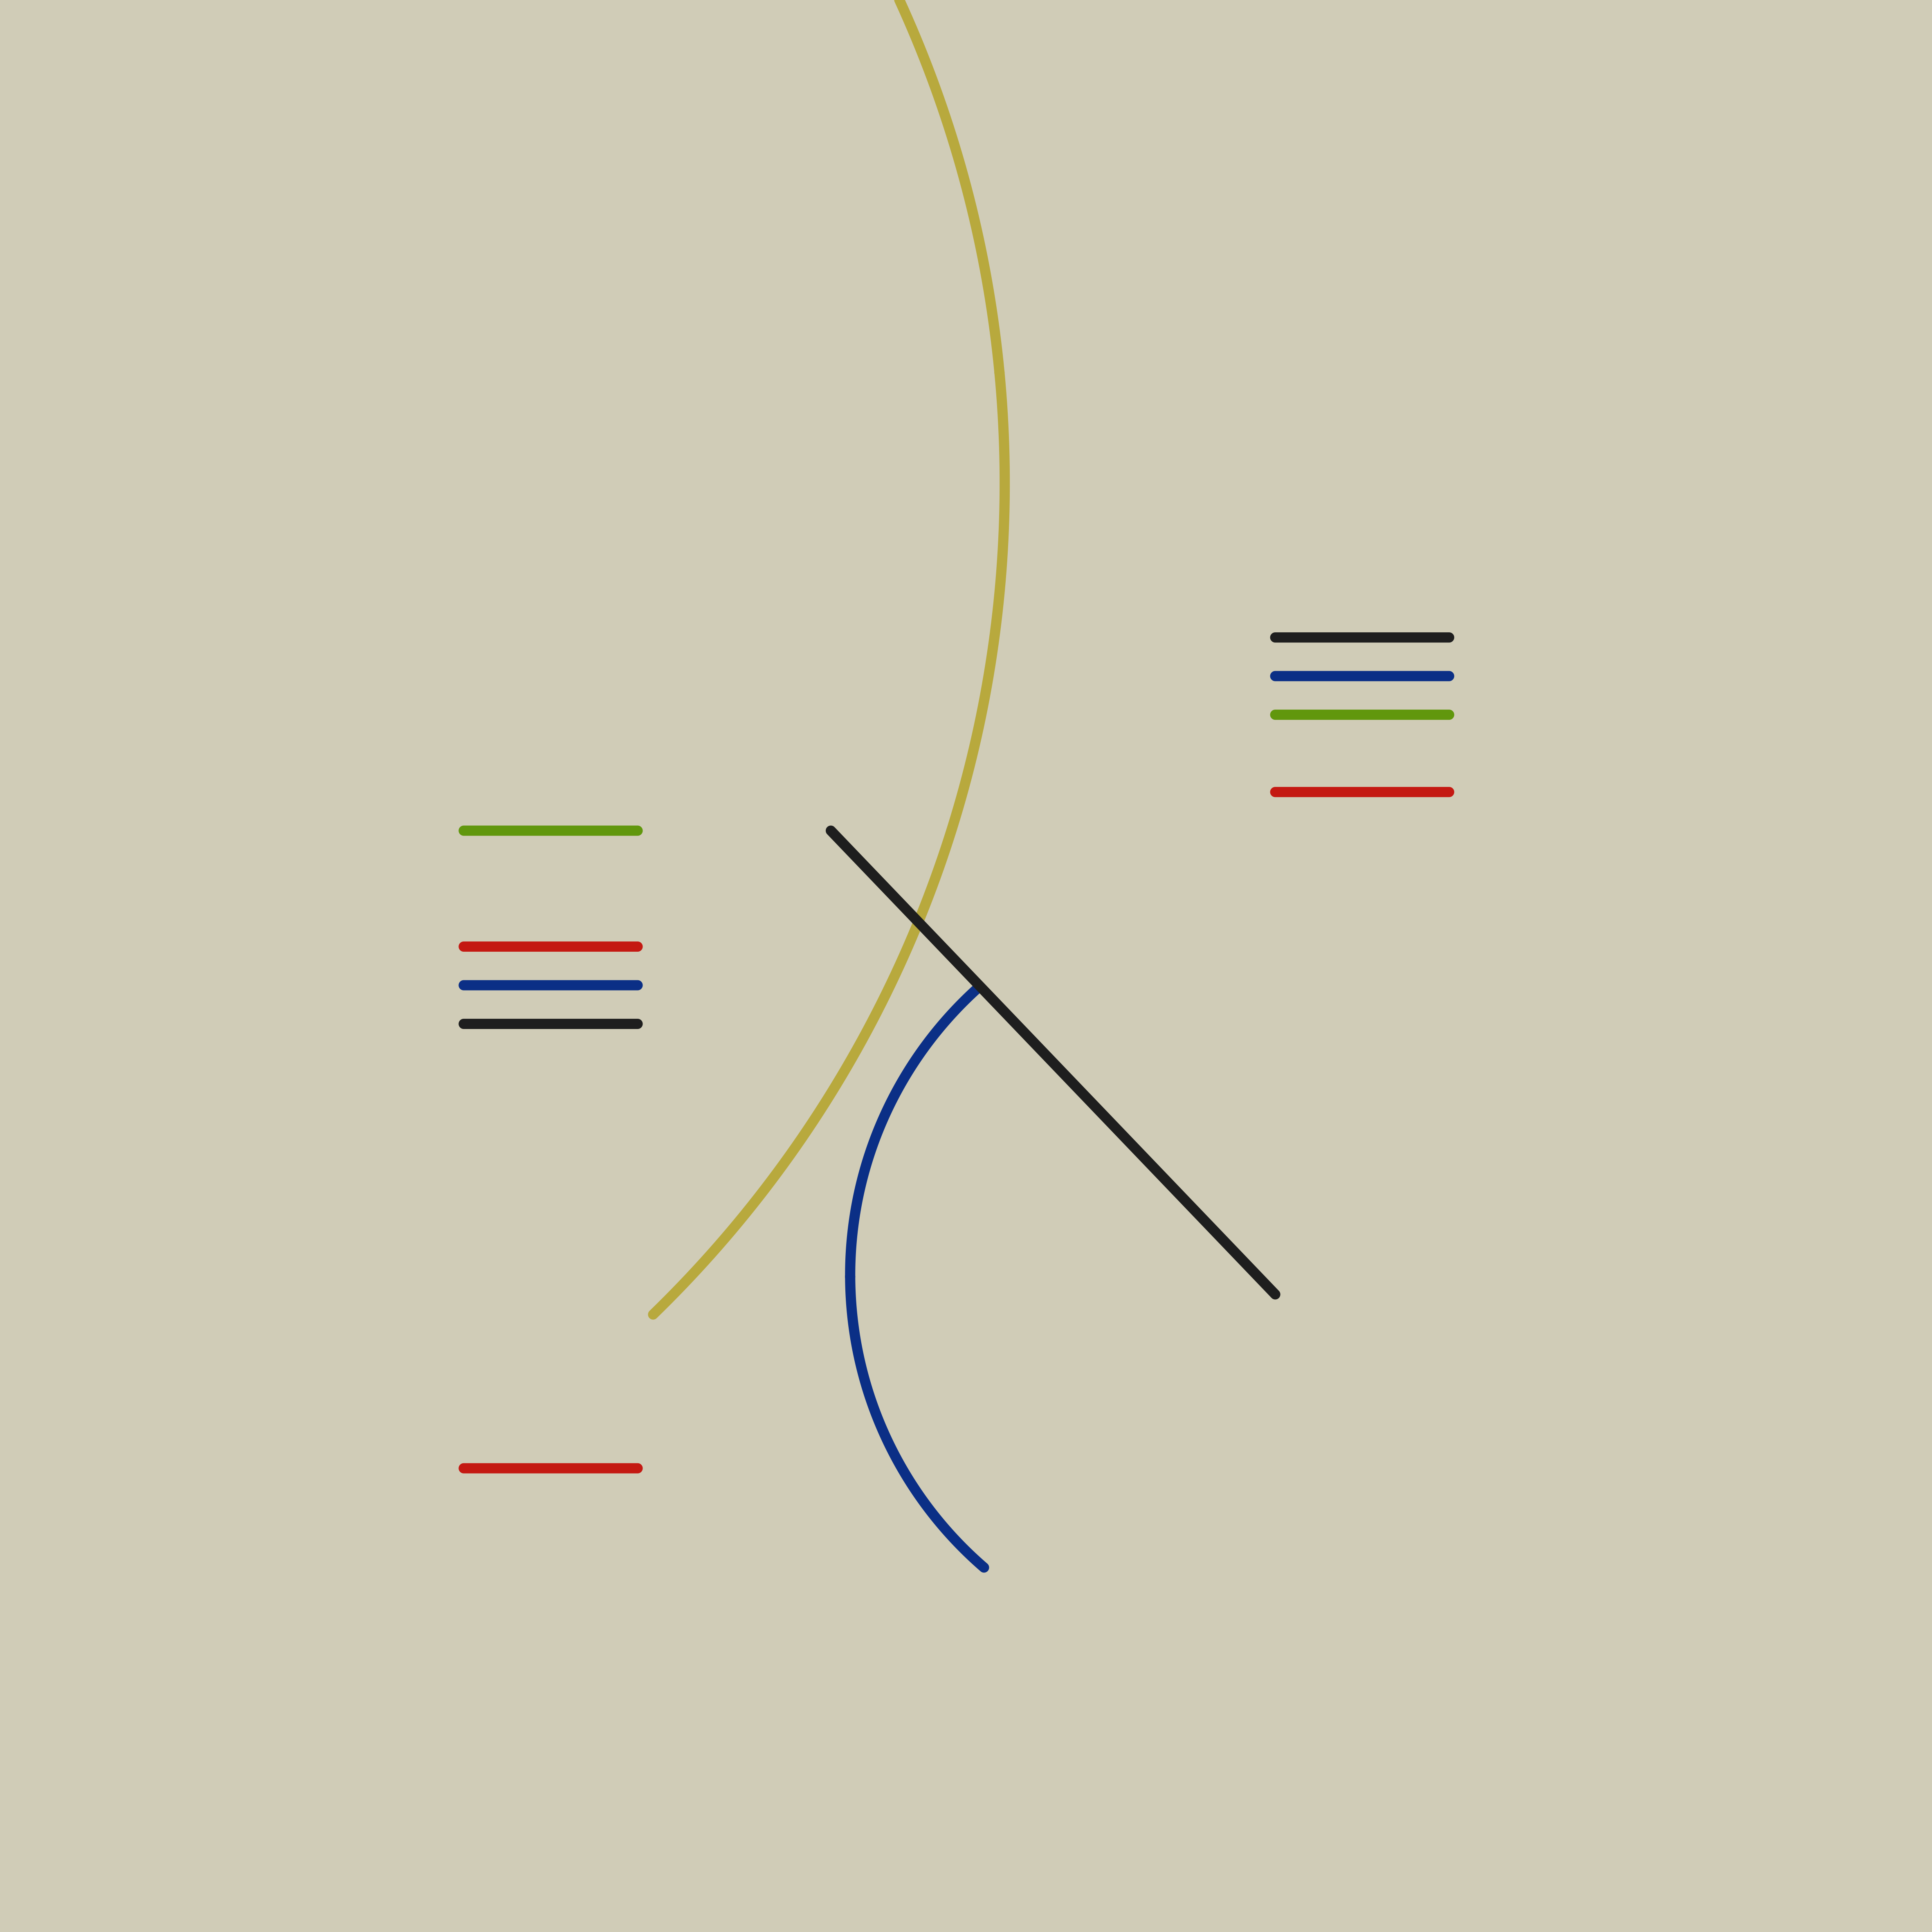 A recreation of Curves and Straight Lines (1948) by Alfred Hlito, which is an oil painting of colorful geometric lines on a cream background. Starting at the top of the painting in the middle there is a dark yellow curve. Intersecting it in the center of the painting is a black line at a 45 degree angle and a dark blue curve. In the top right of the center area there are short horizontal black blue green and red lines. In the top left of the center area are horizontal green red blue and black lines. In the bottom left of the center there is a short horizontal red line.